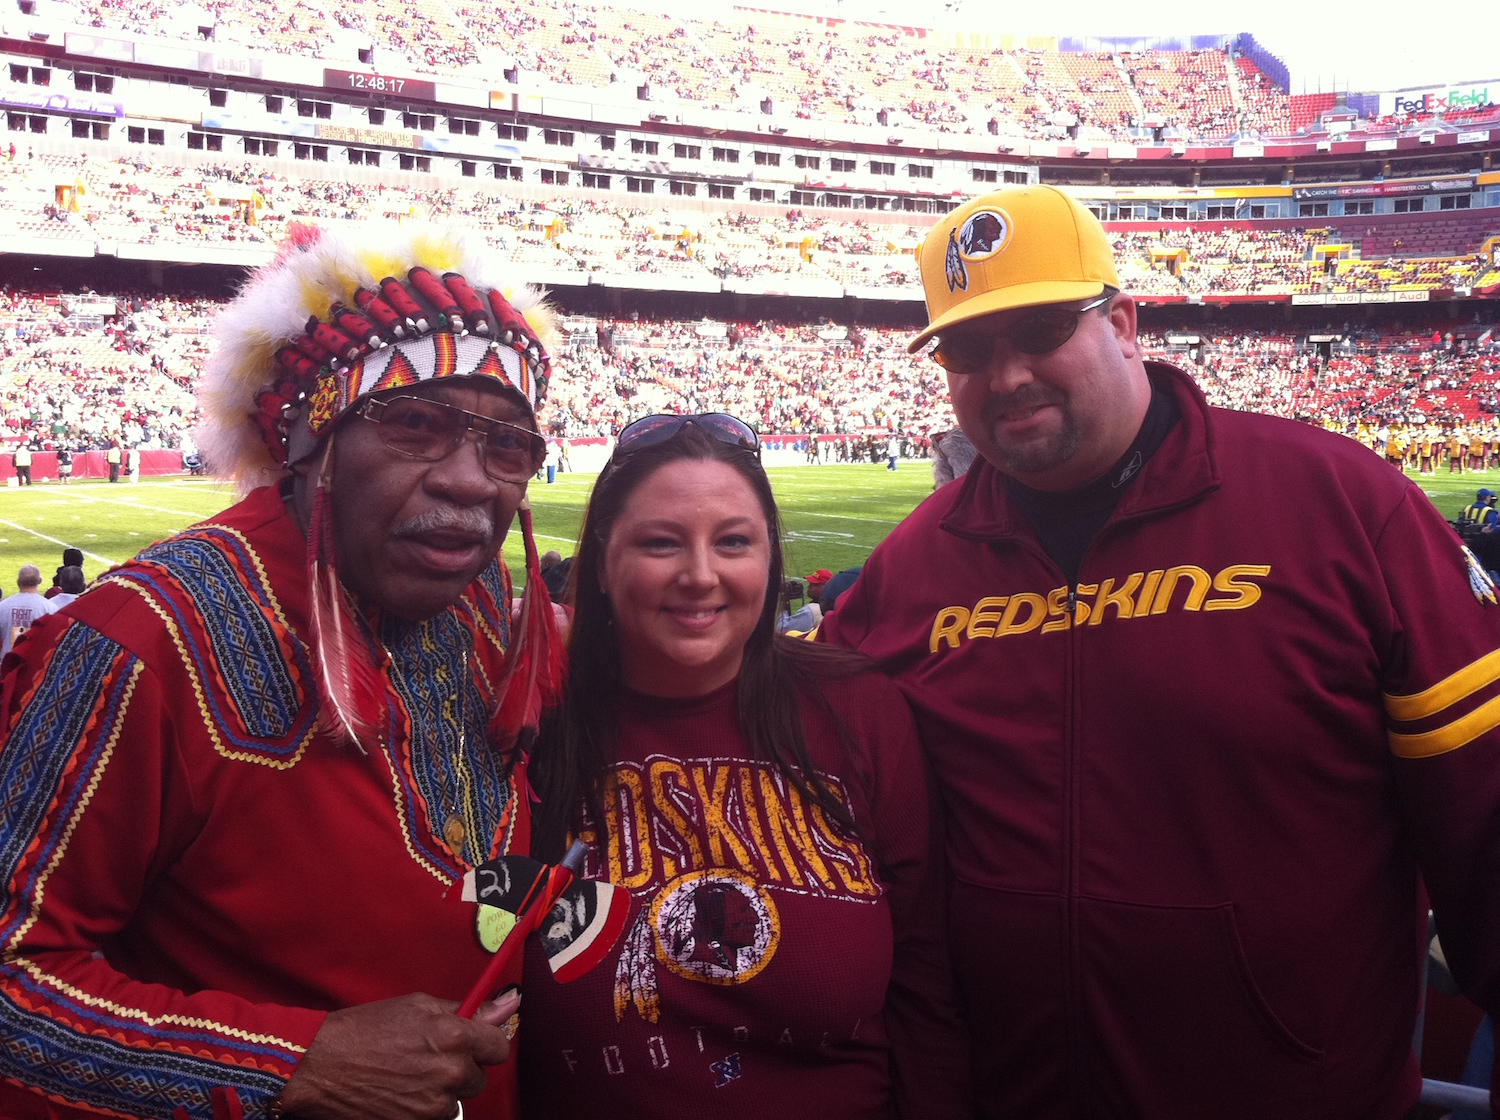 Unofficial NFL team mascot 'Chief Zee' passes away at age 75